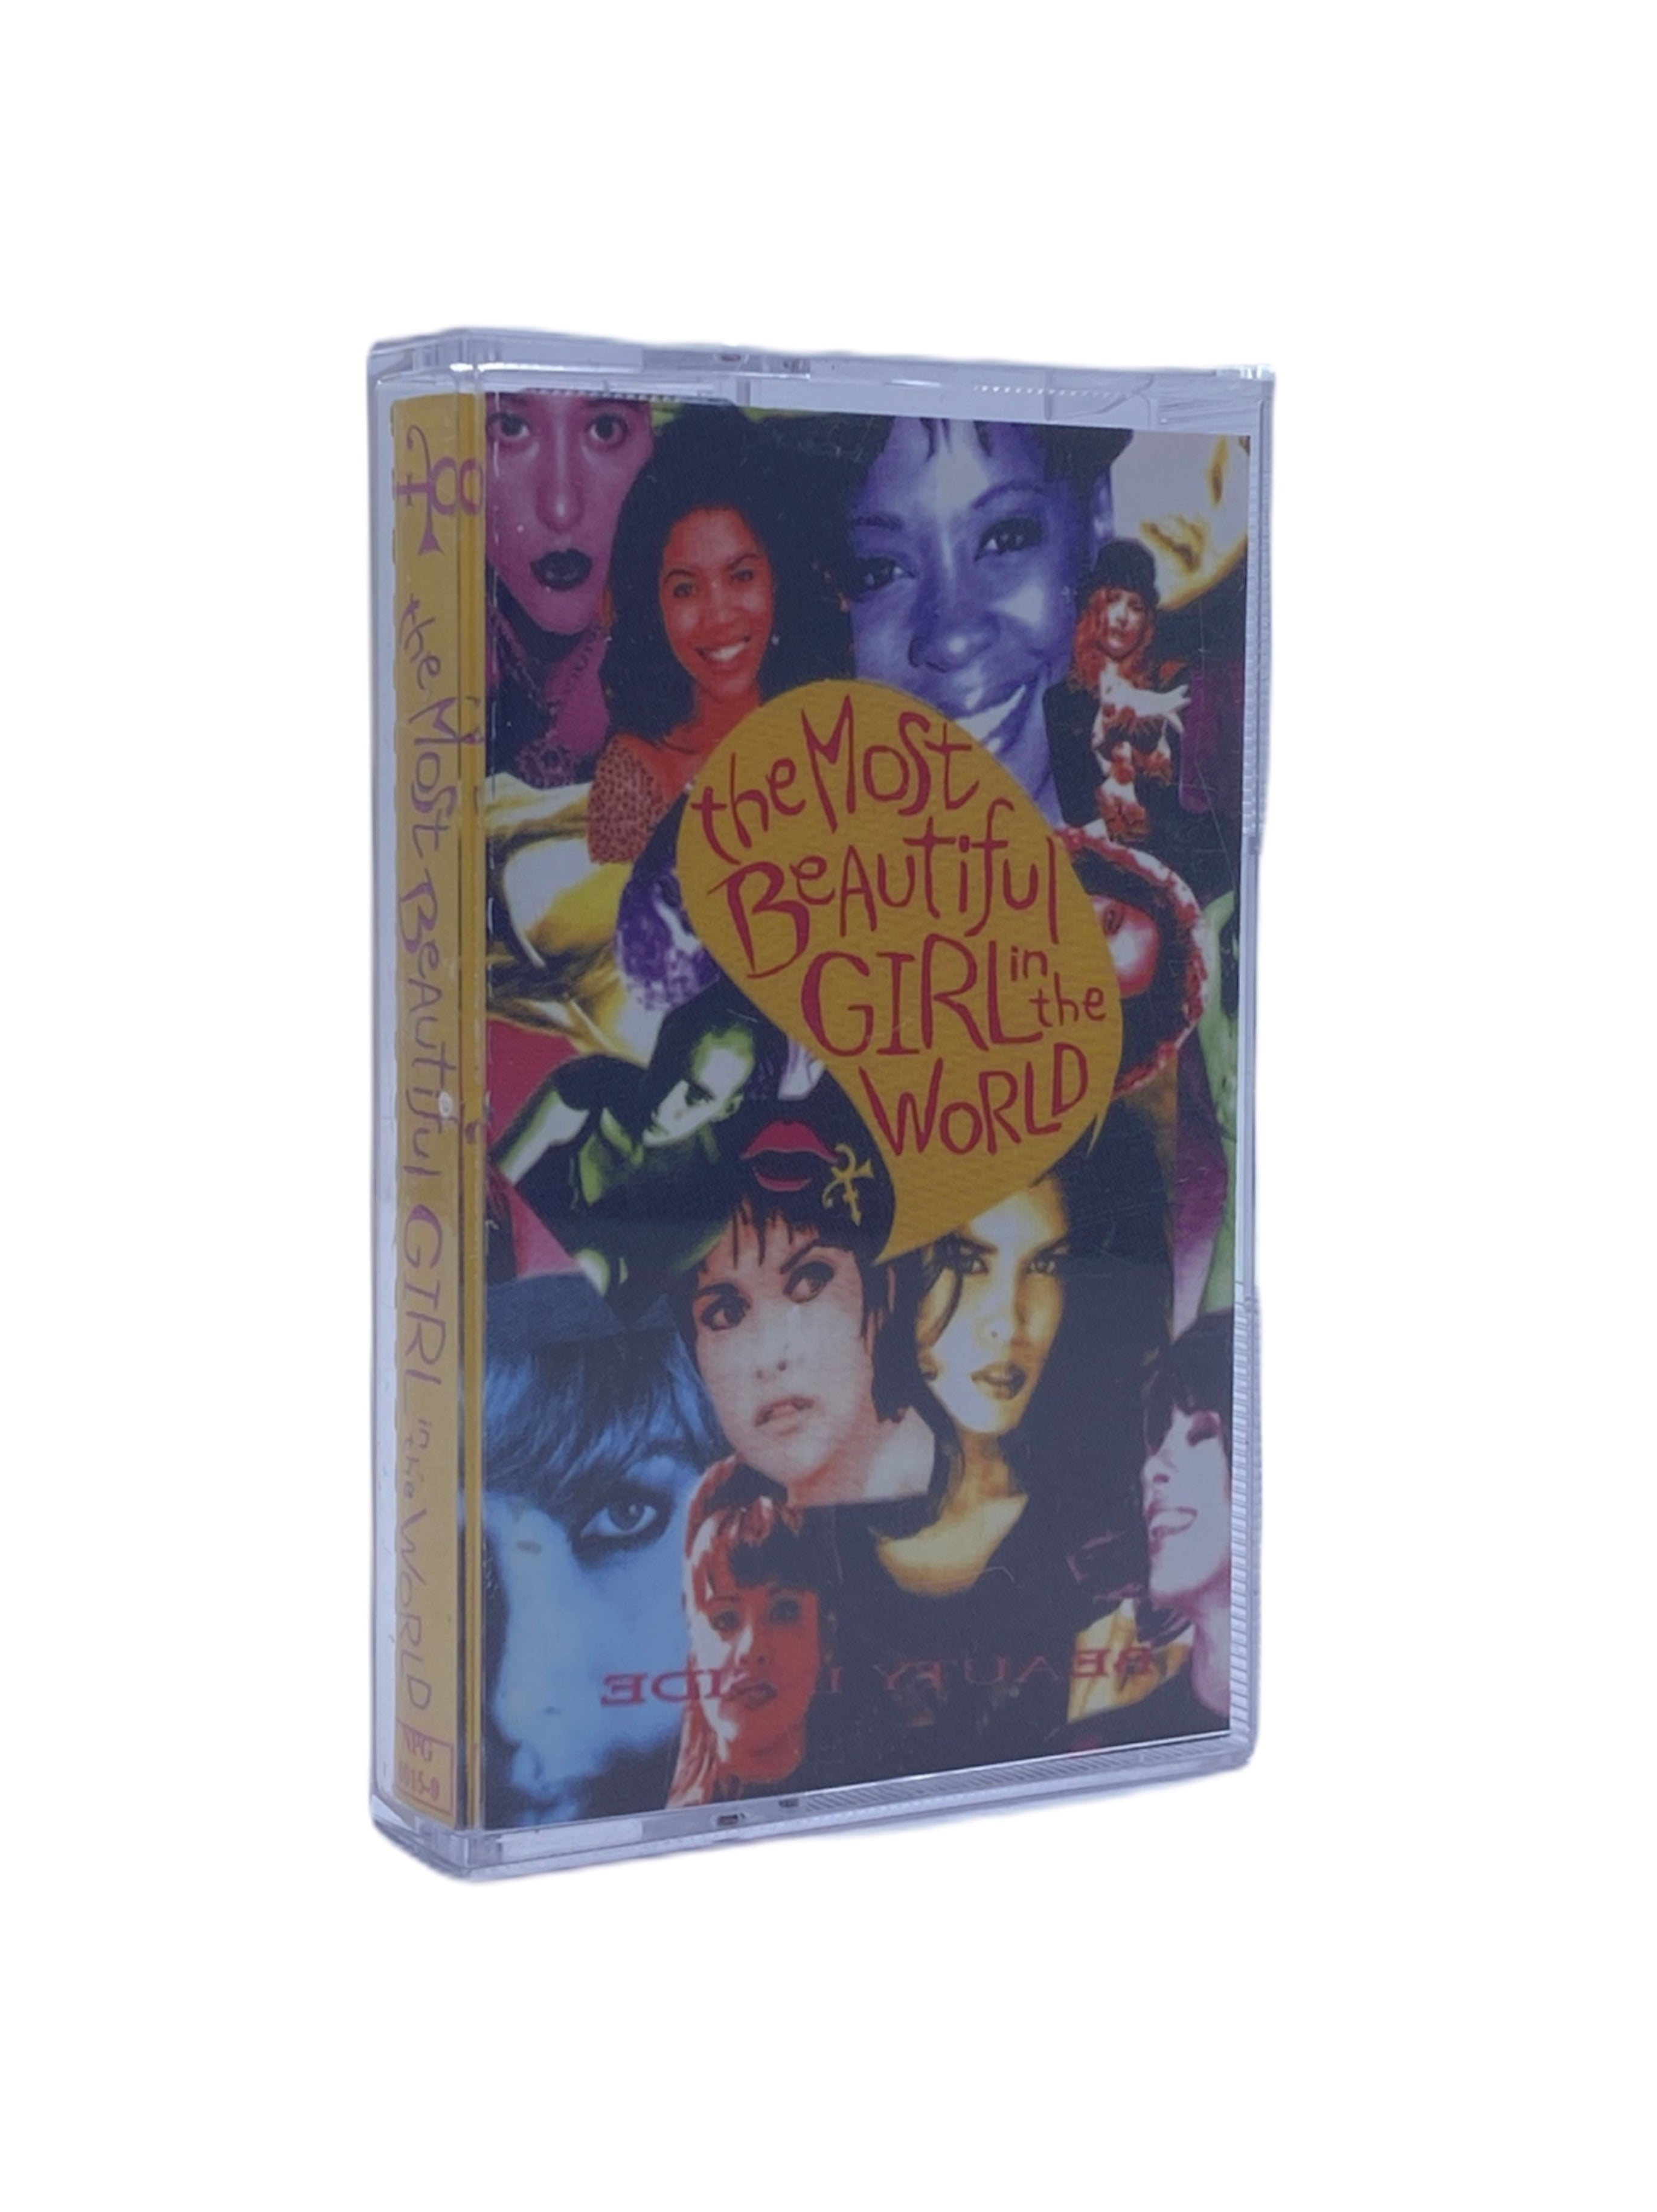 Prince The Most Beautiful Girl In The World 1994 Original Cassette Tape Cassingle SMS